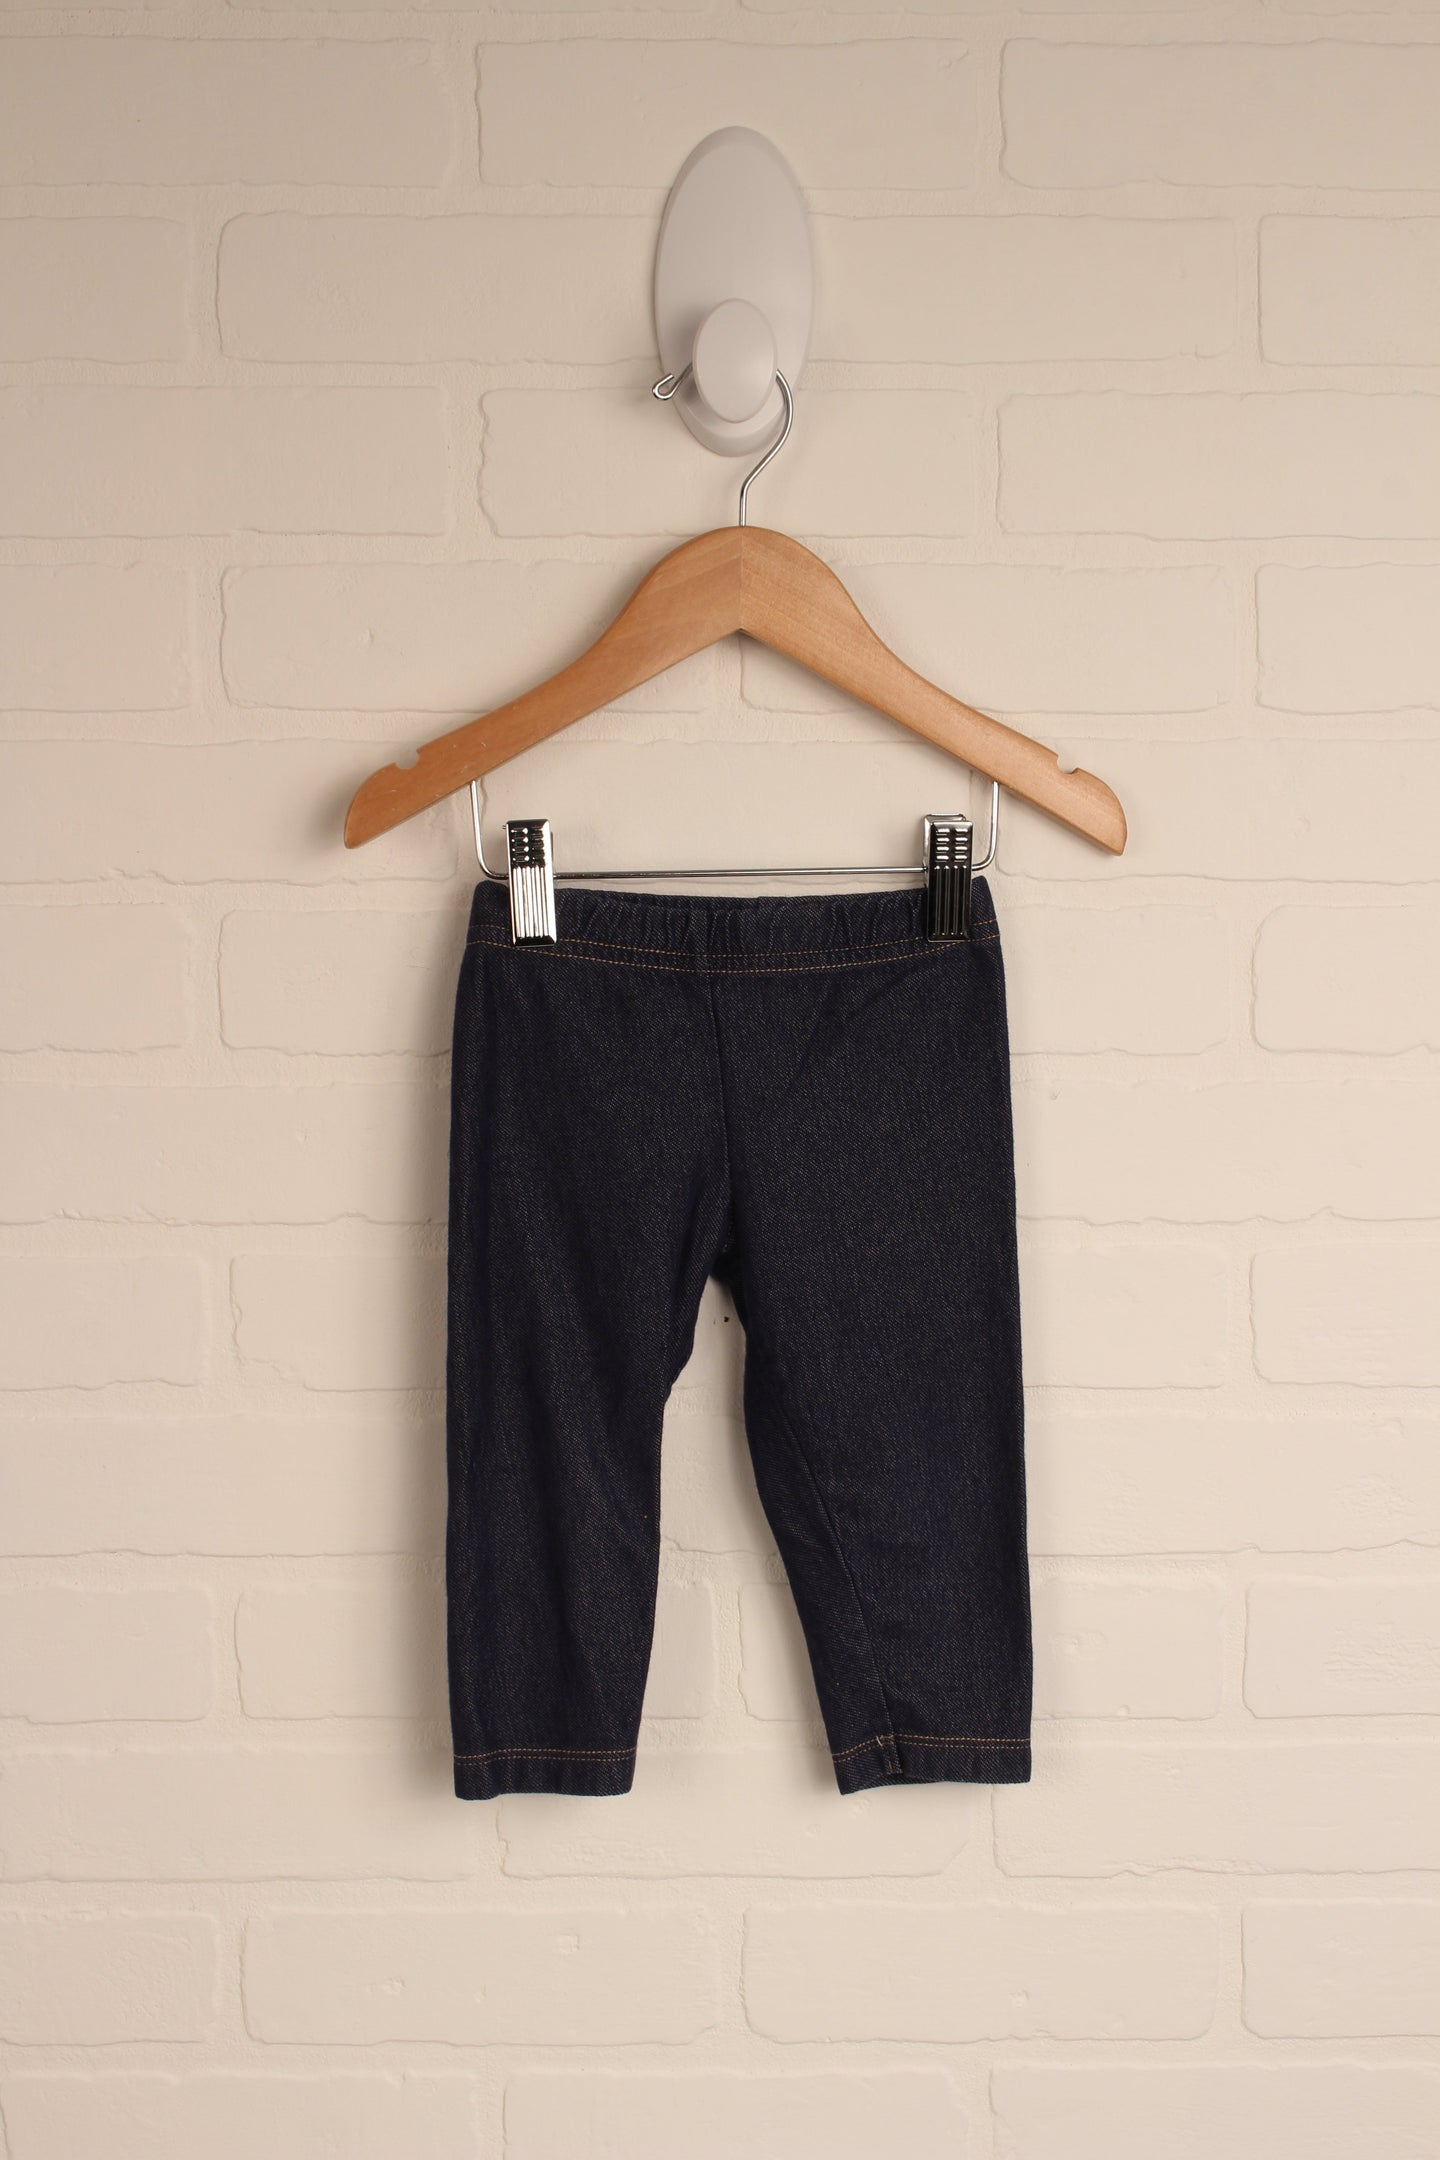 Blue Jeggings (Size 2T)